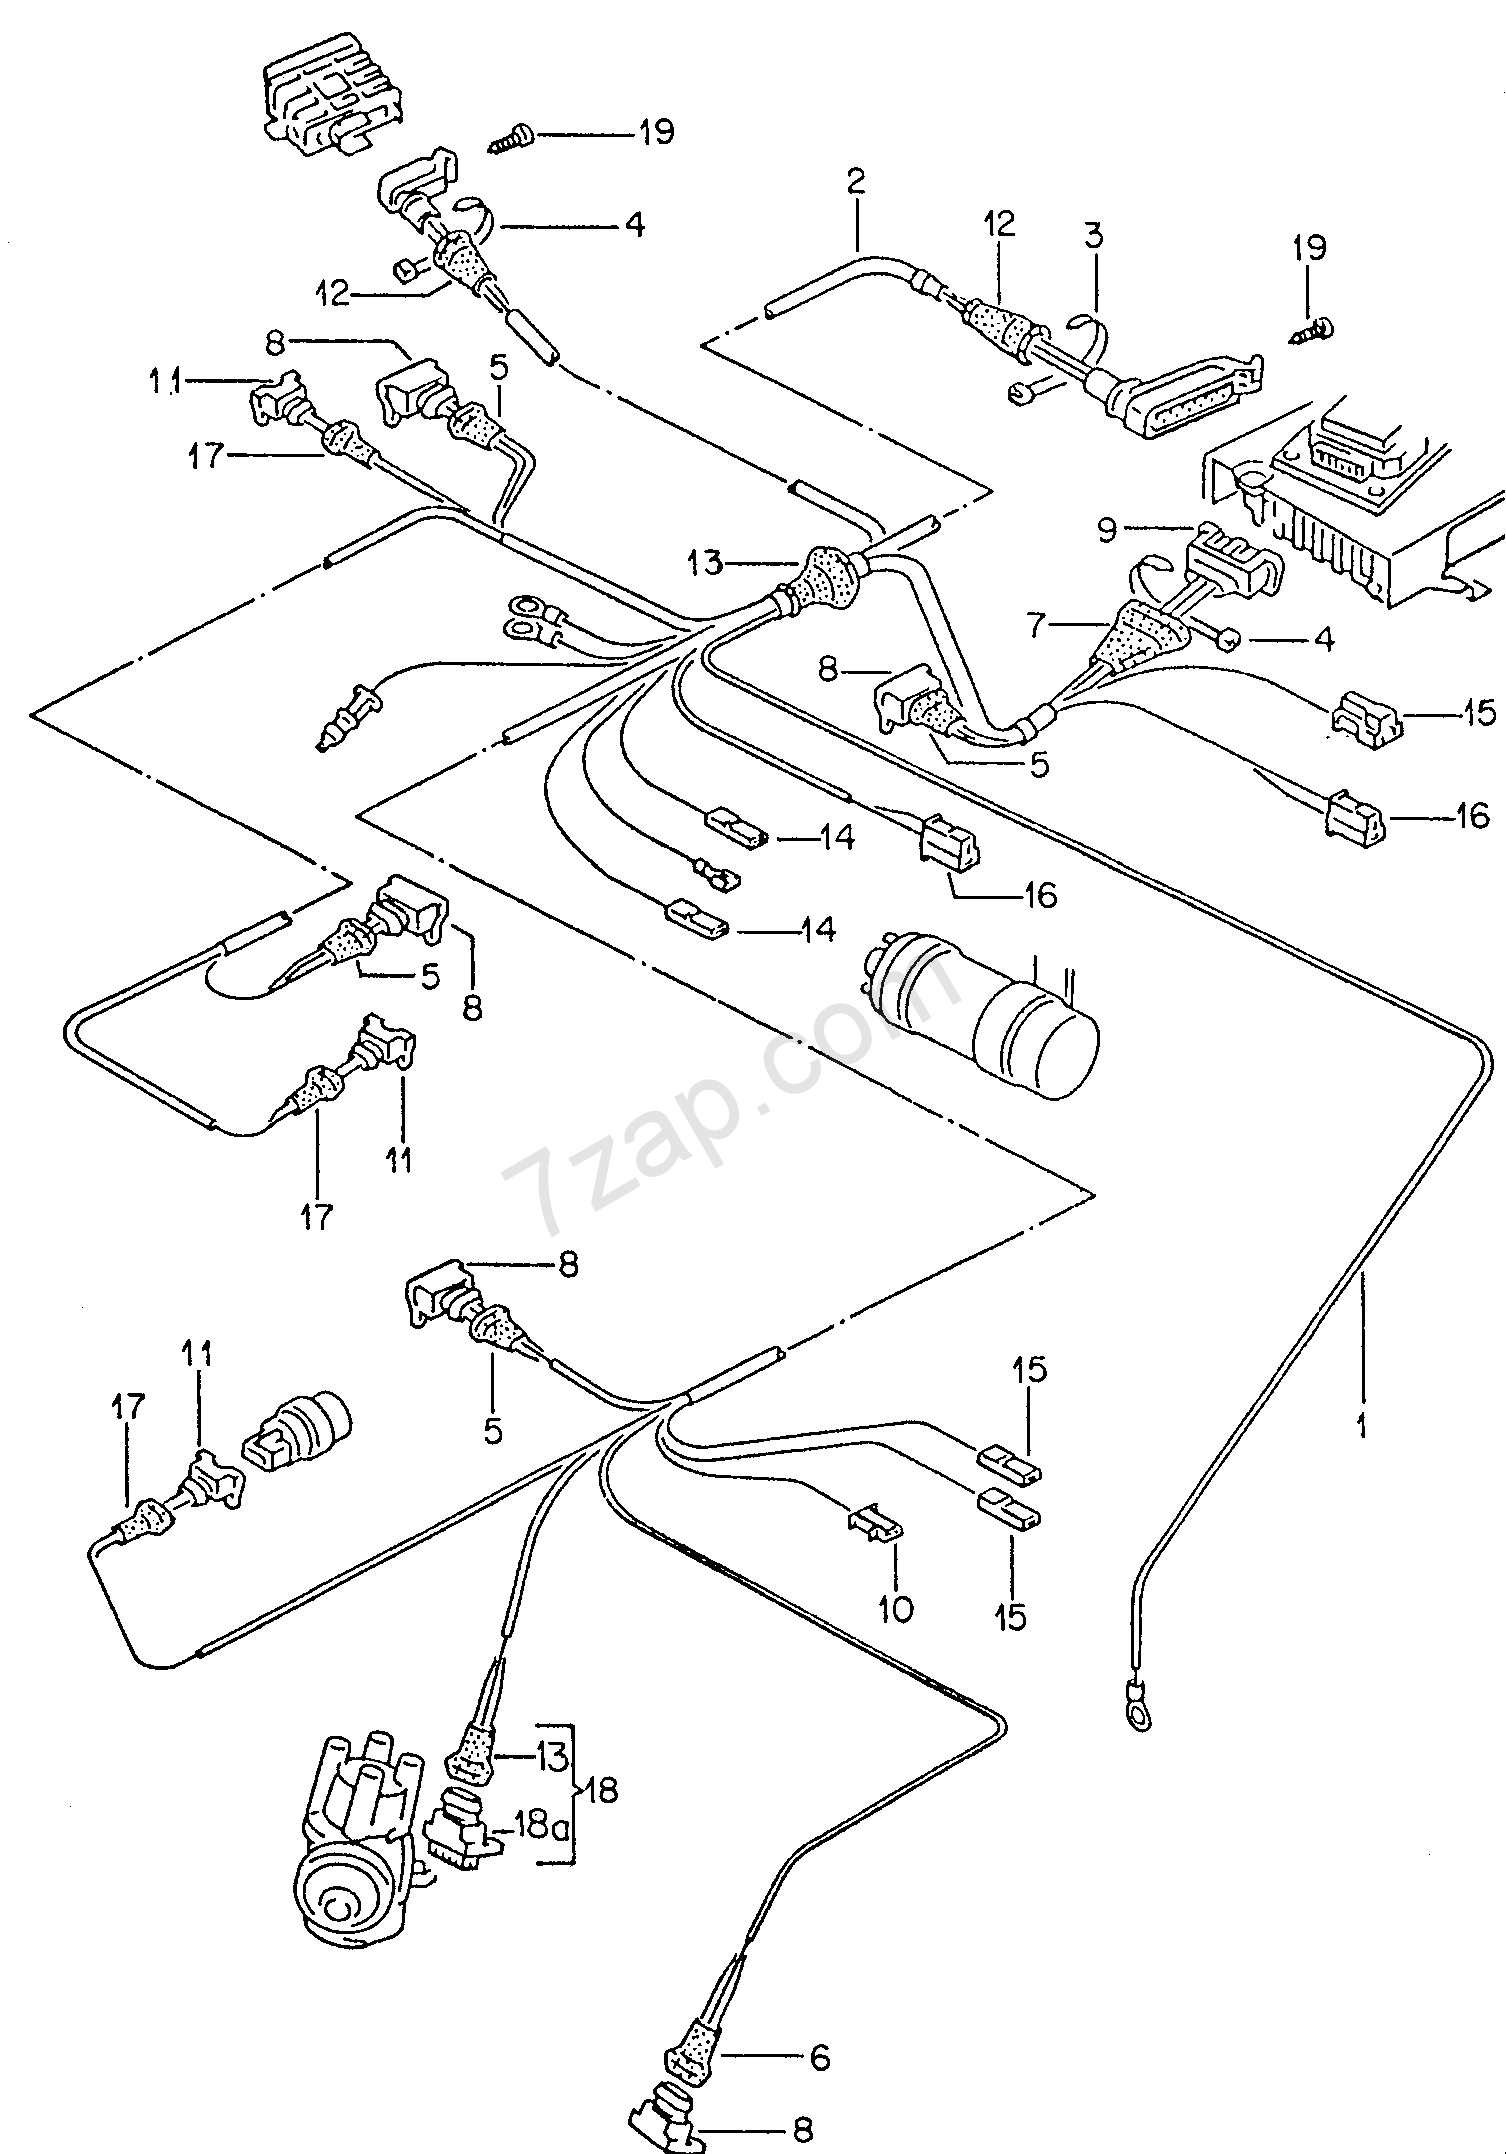 042162000 vehicle wiring harness 7 pin,wiring free download printable wiring,Rv Trailer Wiring Diagram 7 Way